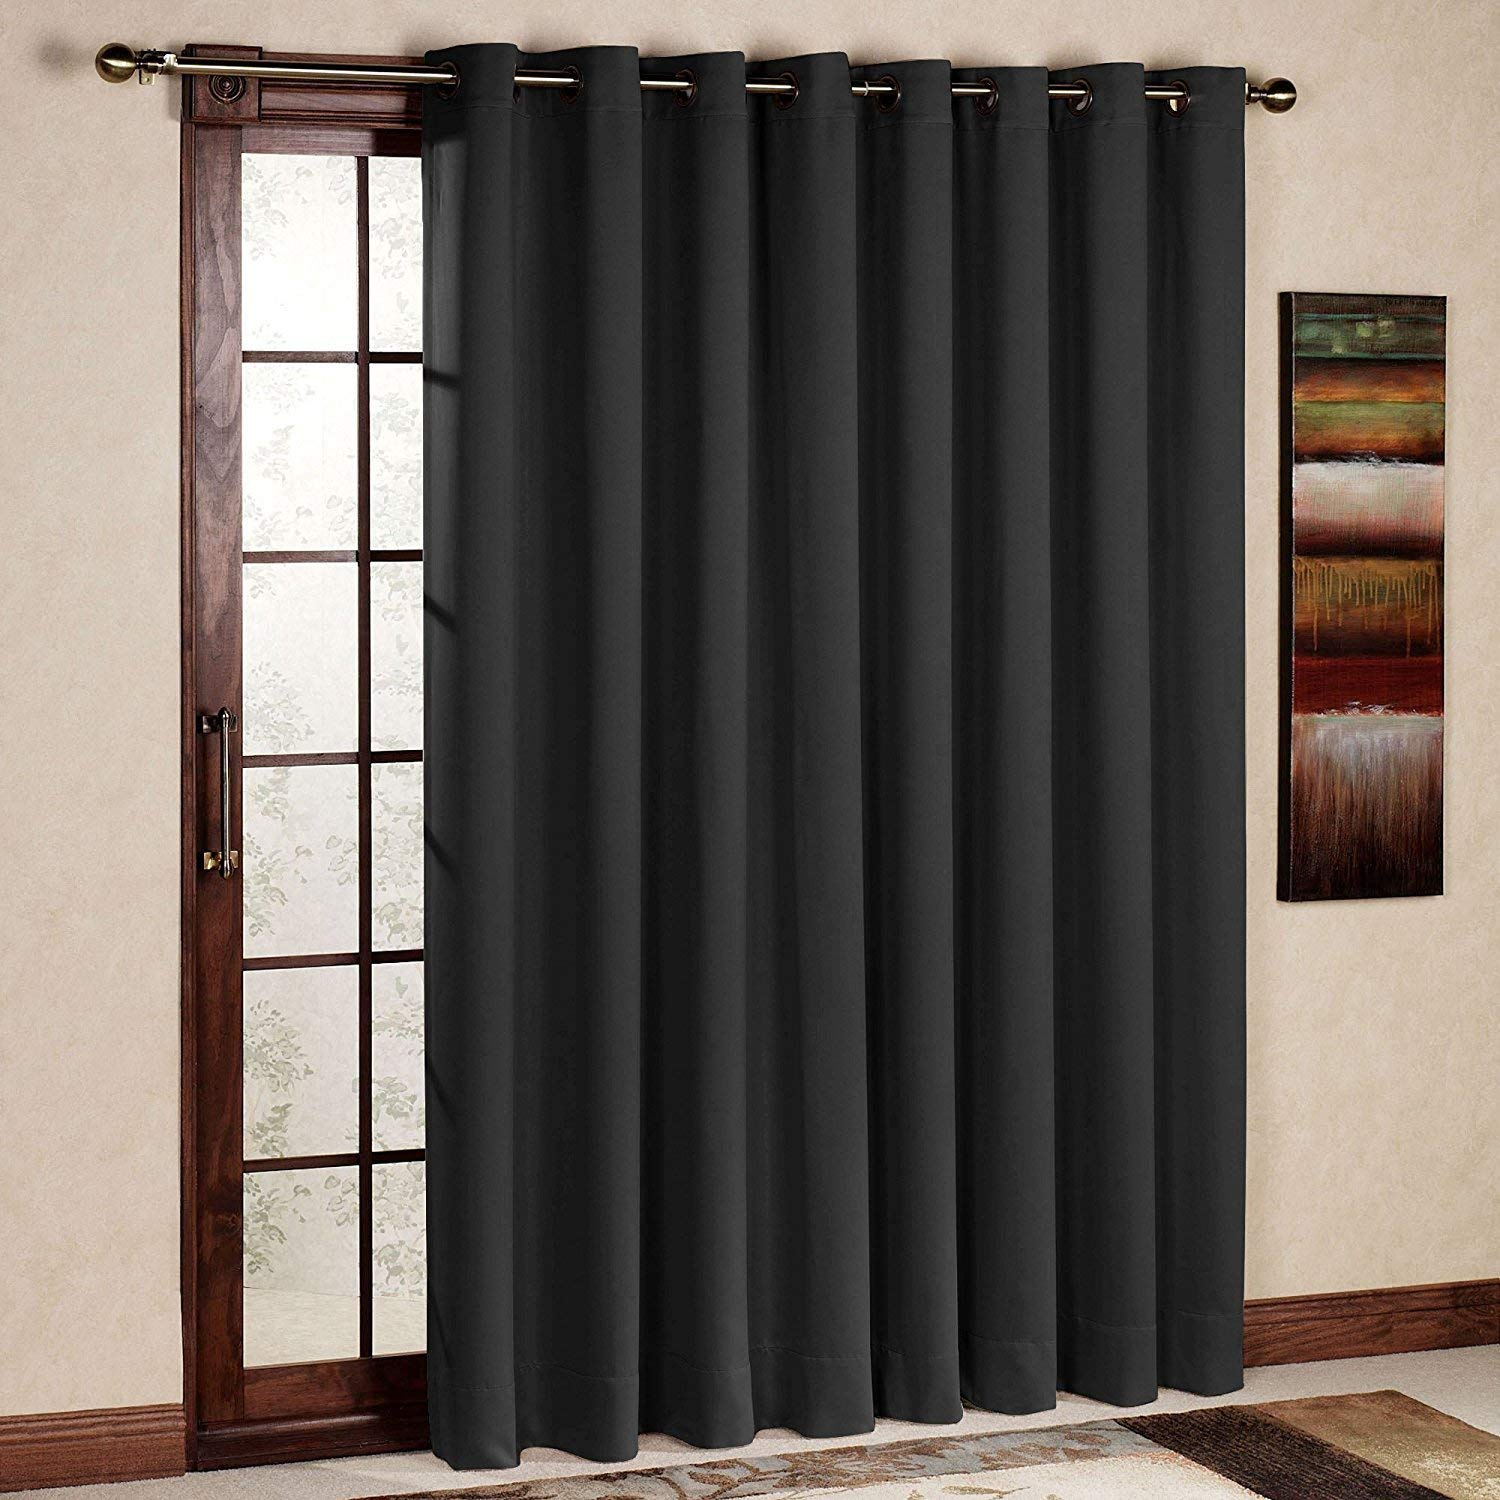 96 inch wide blinds wood blinds rose home fashion rhf function curtainwide thermal blackout patio door curtain panel sliding